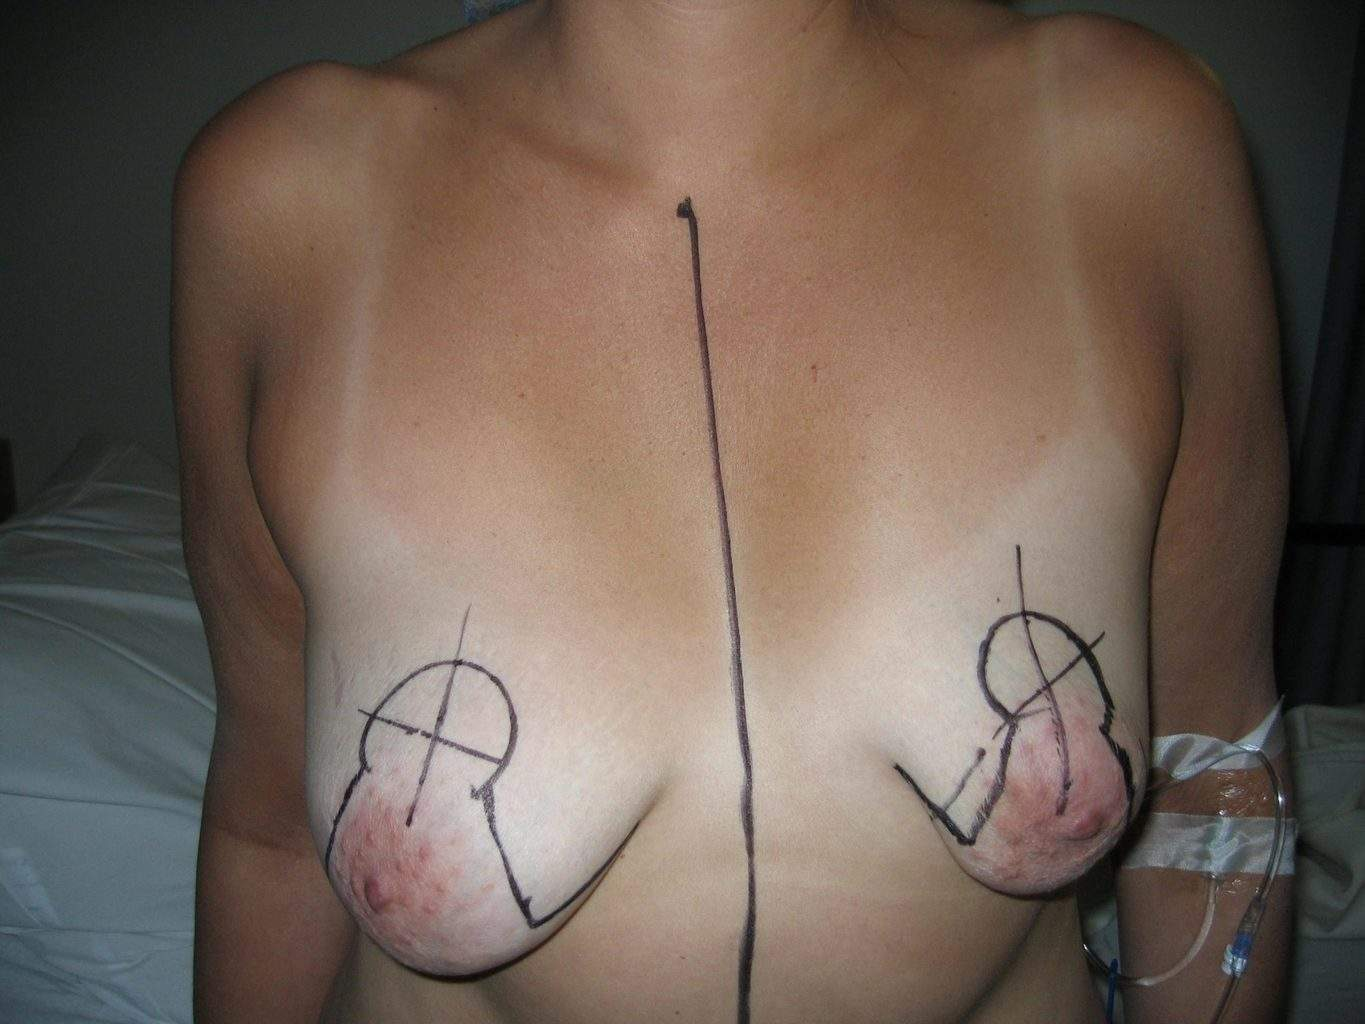 Image of asymmetric tubular breast scheduled for cosmetic Breast Lift Mastopexy + Implant Rhode Island Female Plastic Surgeon Preop